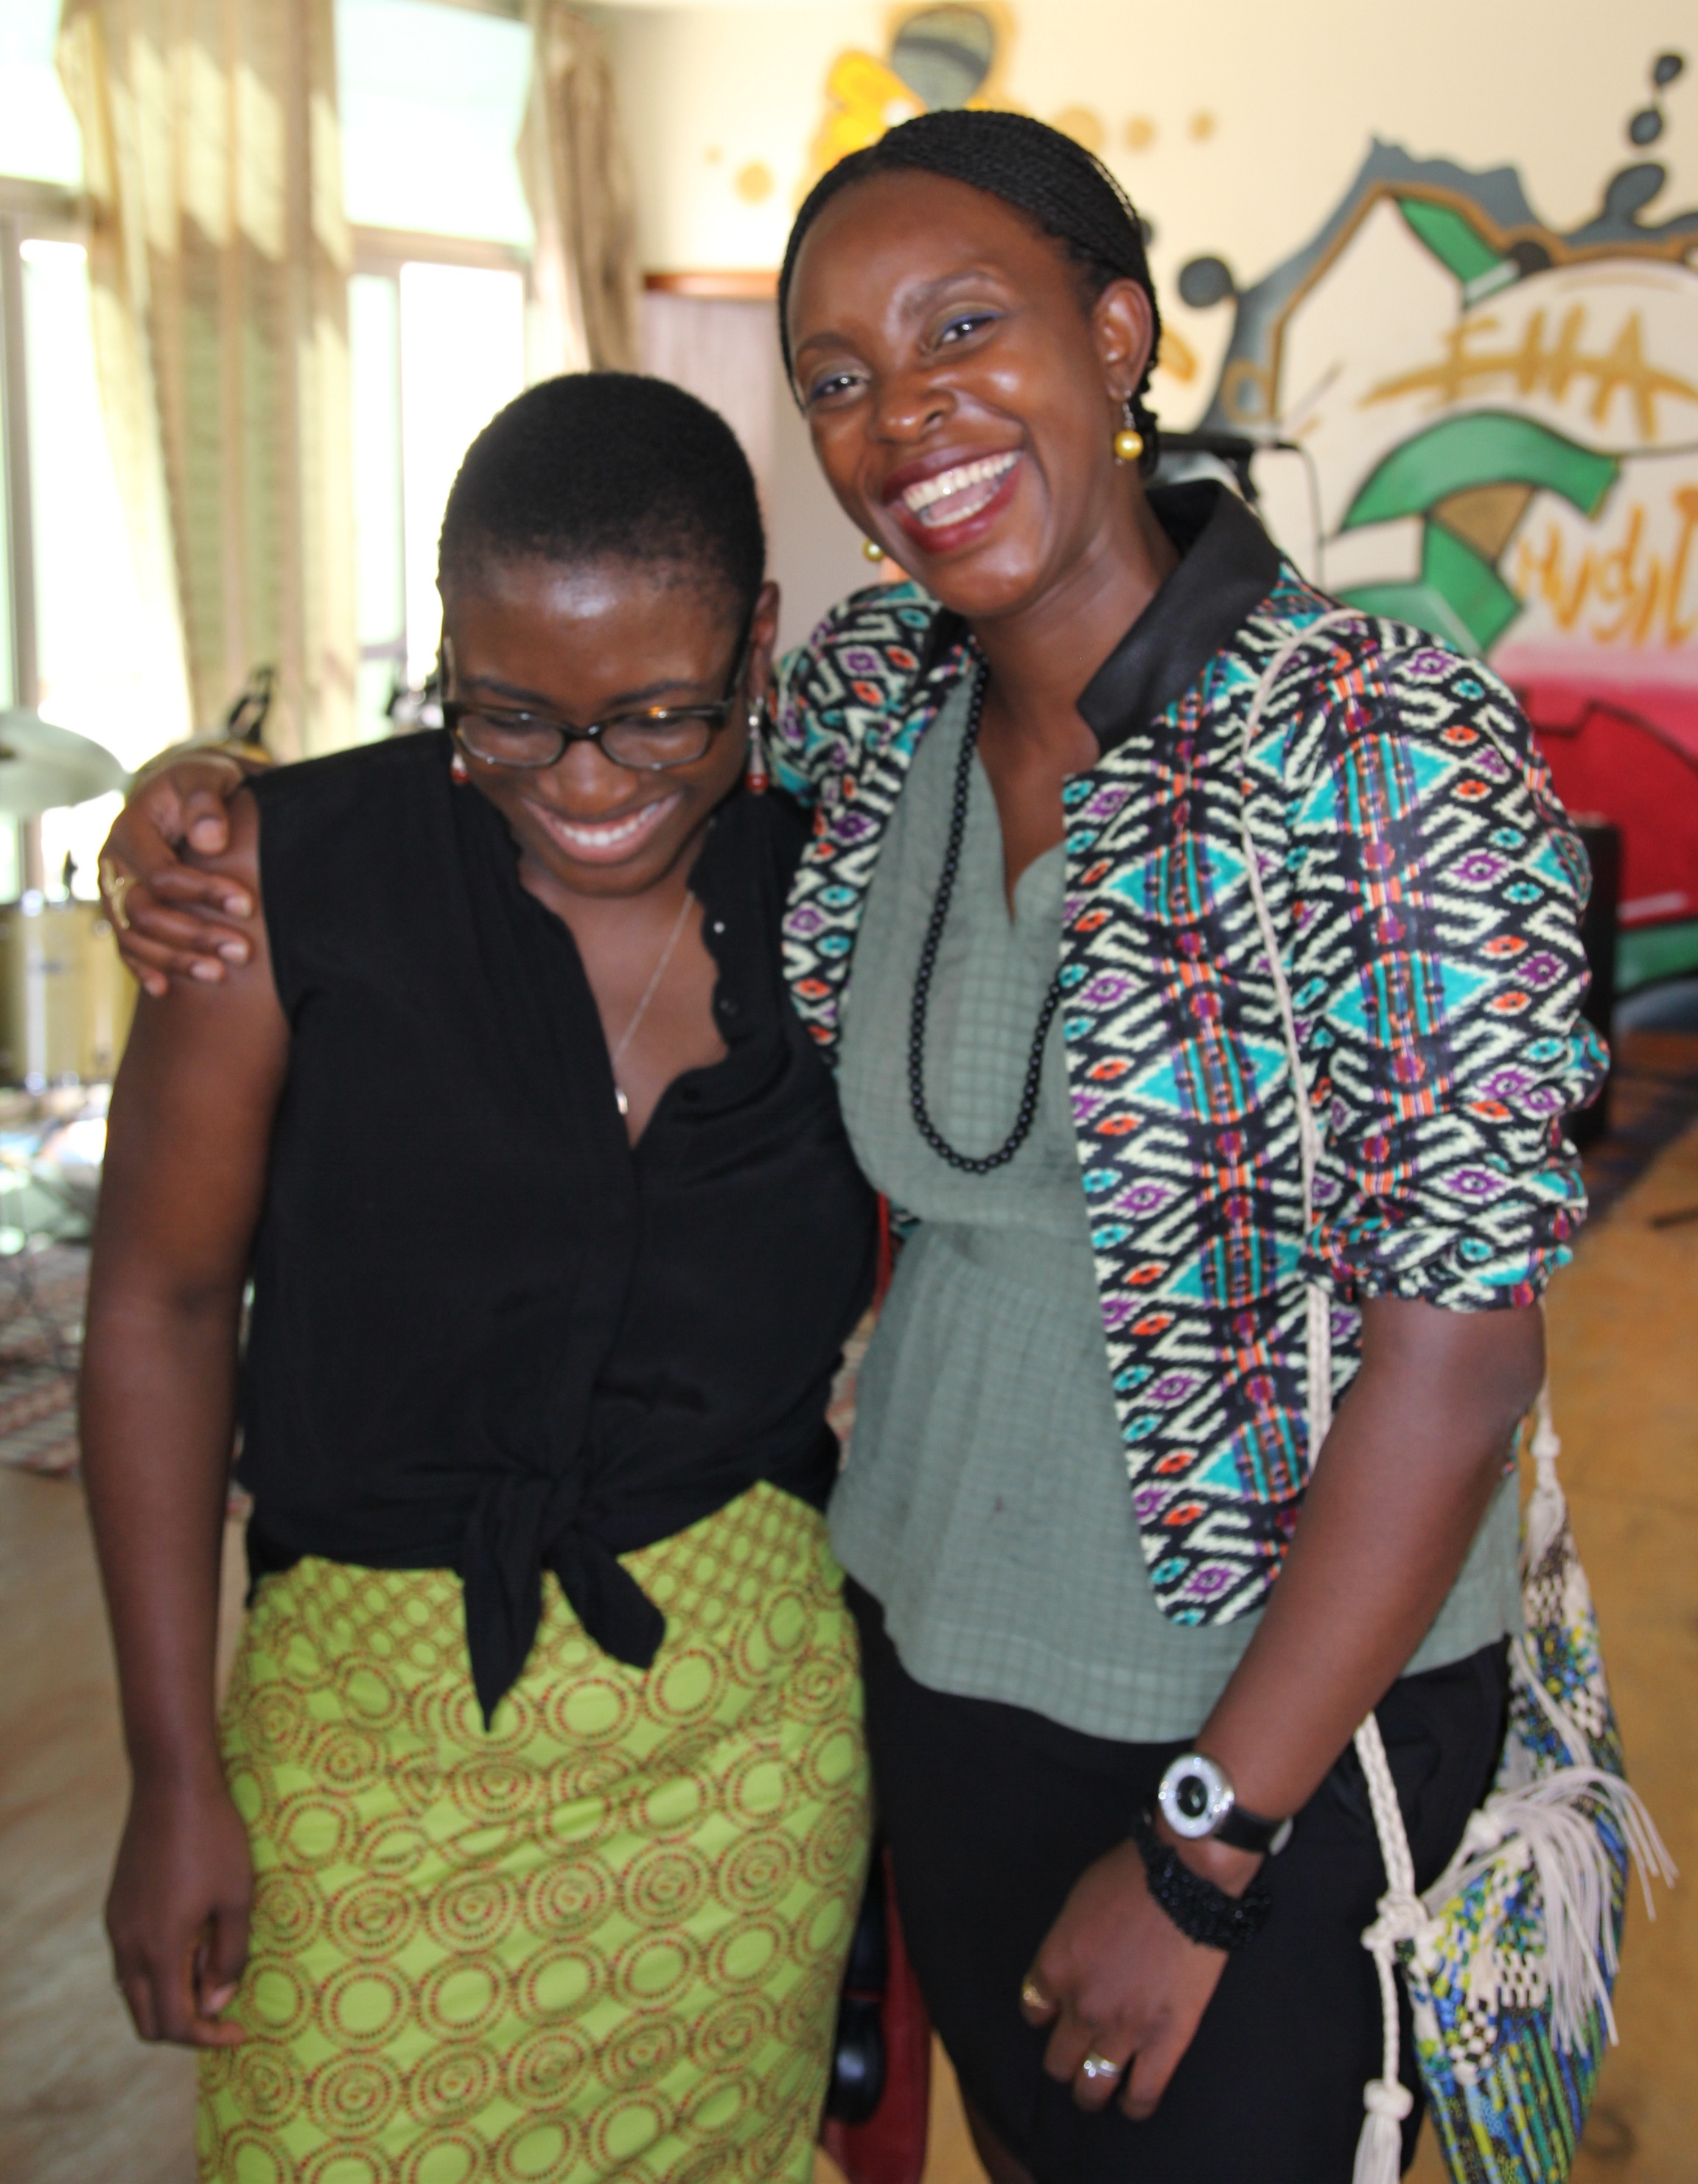 With my friend Rachel-Diane Cusiac-Barr, founder of  Niango,  an Africa-inspired clothing line.